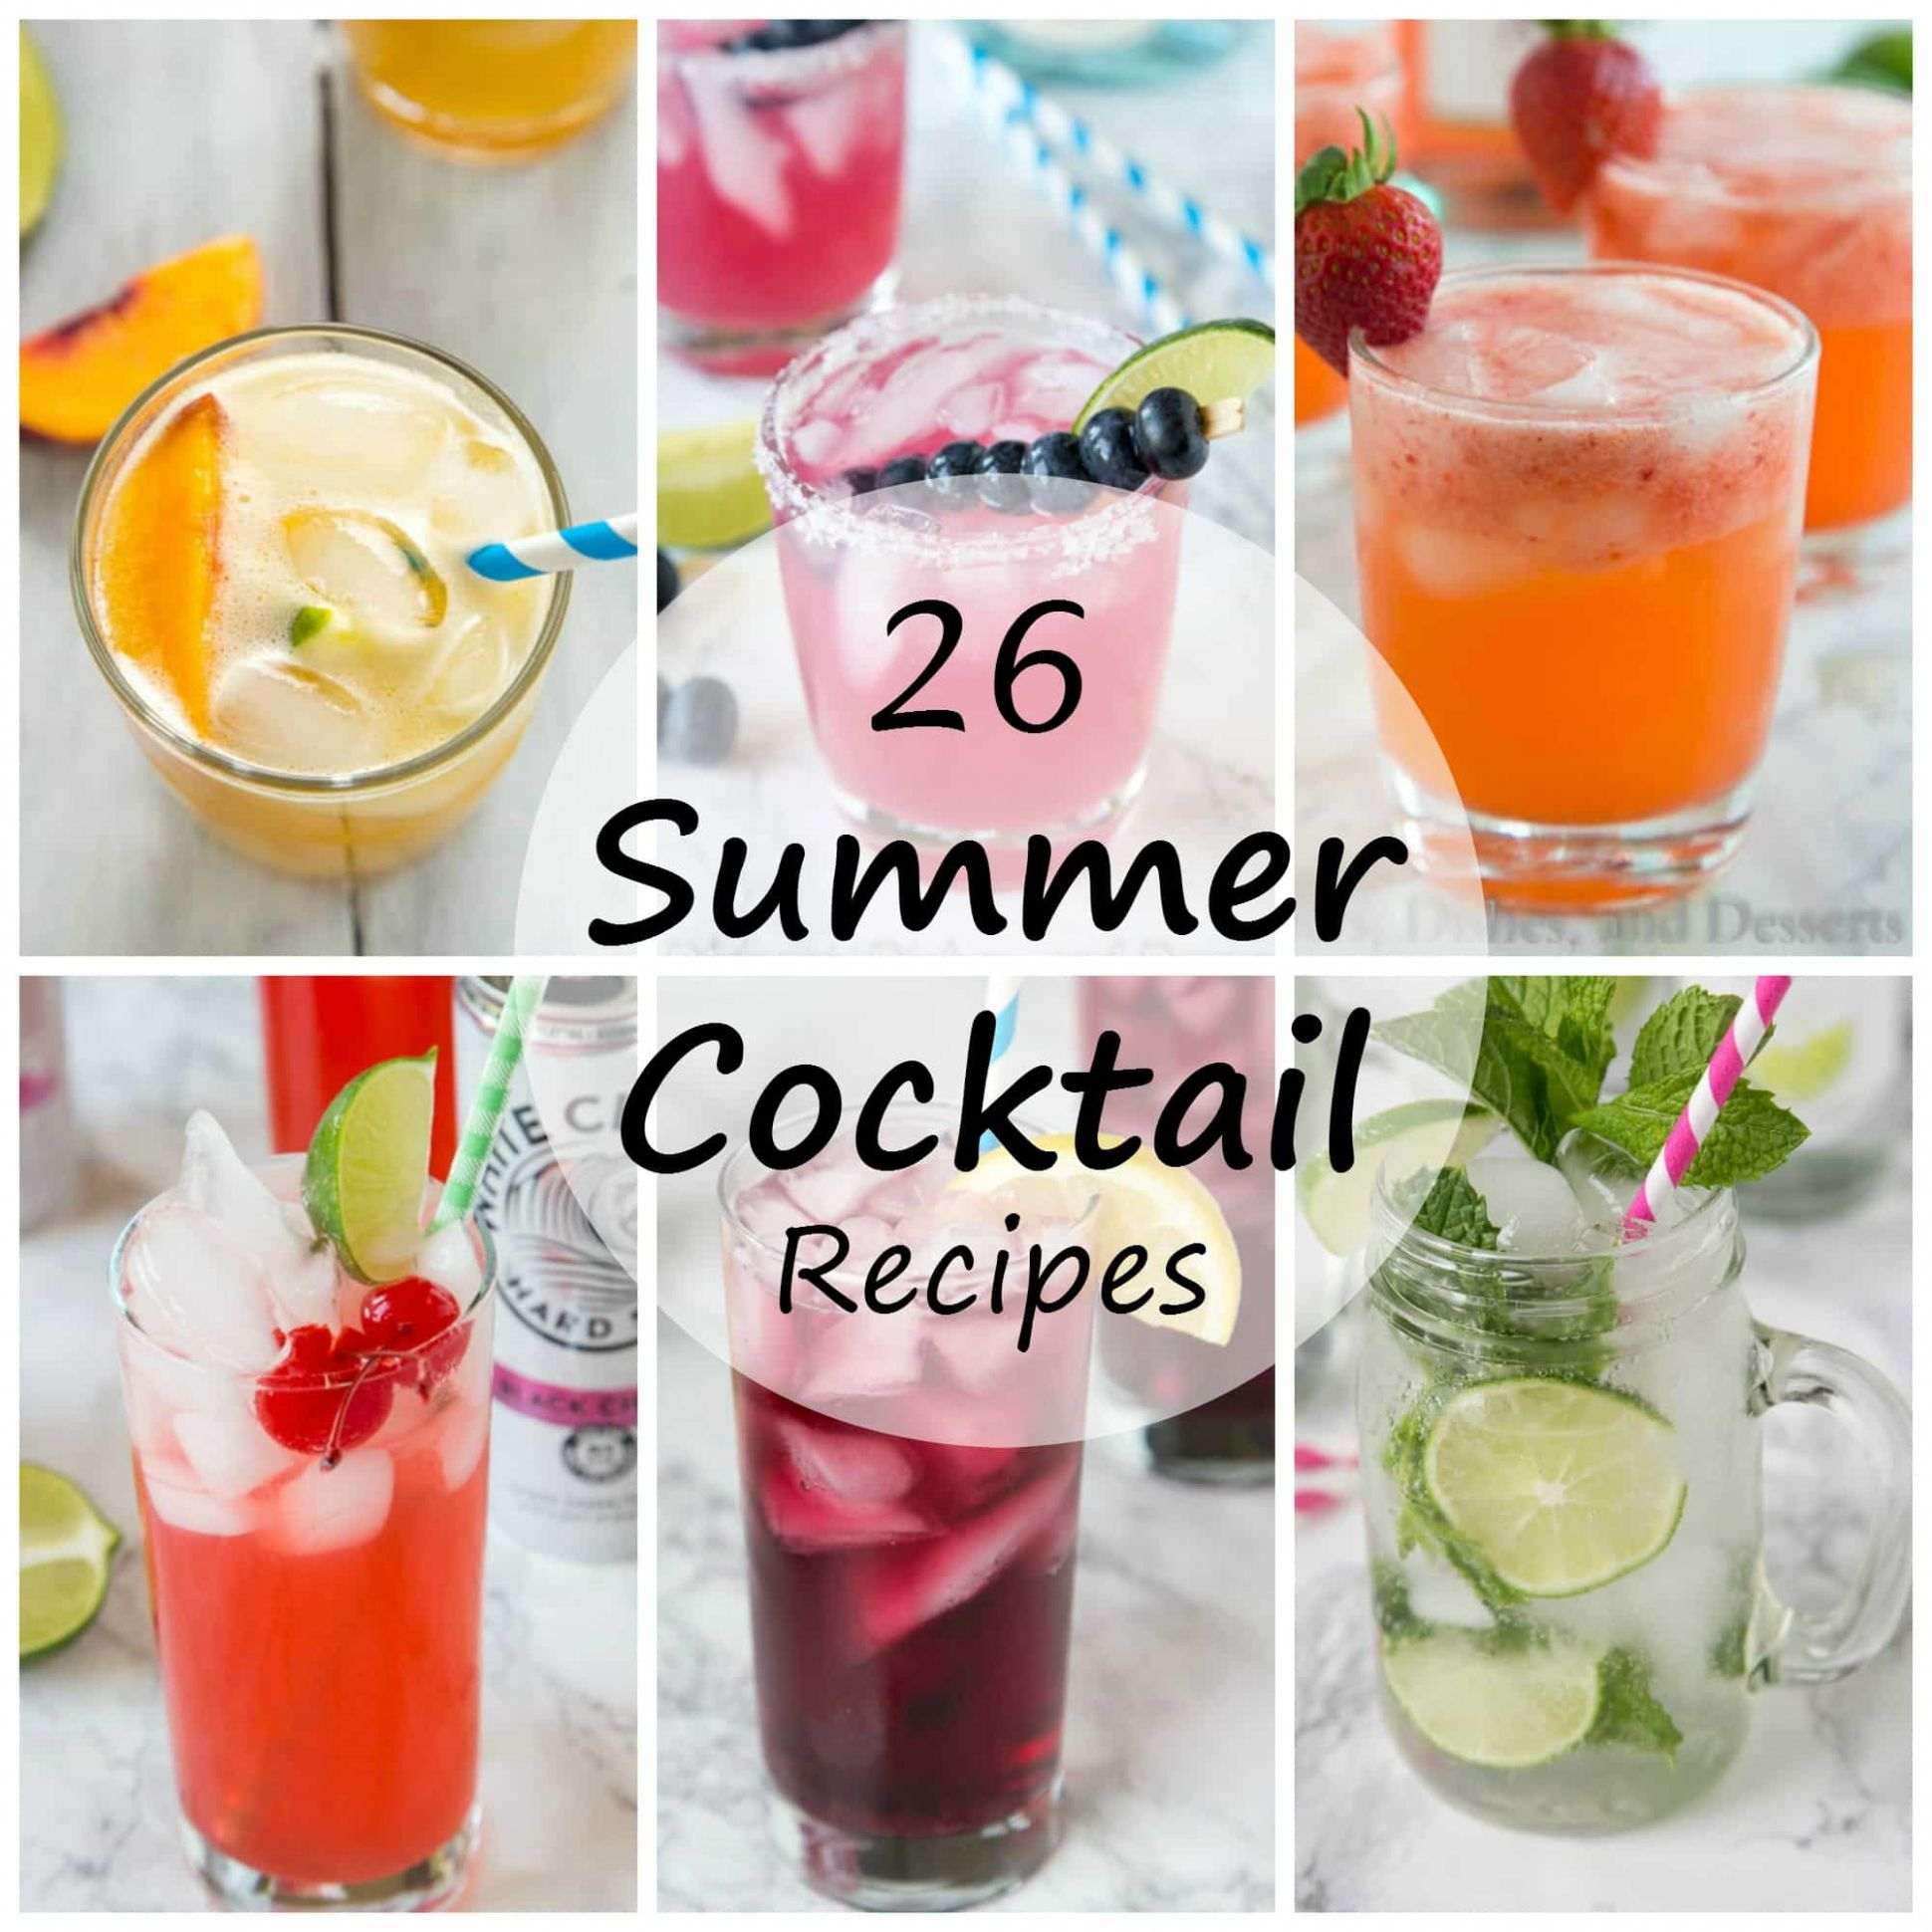 Summer Cocktail Recipes - Dinners, Dishes, and Desserts